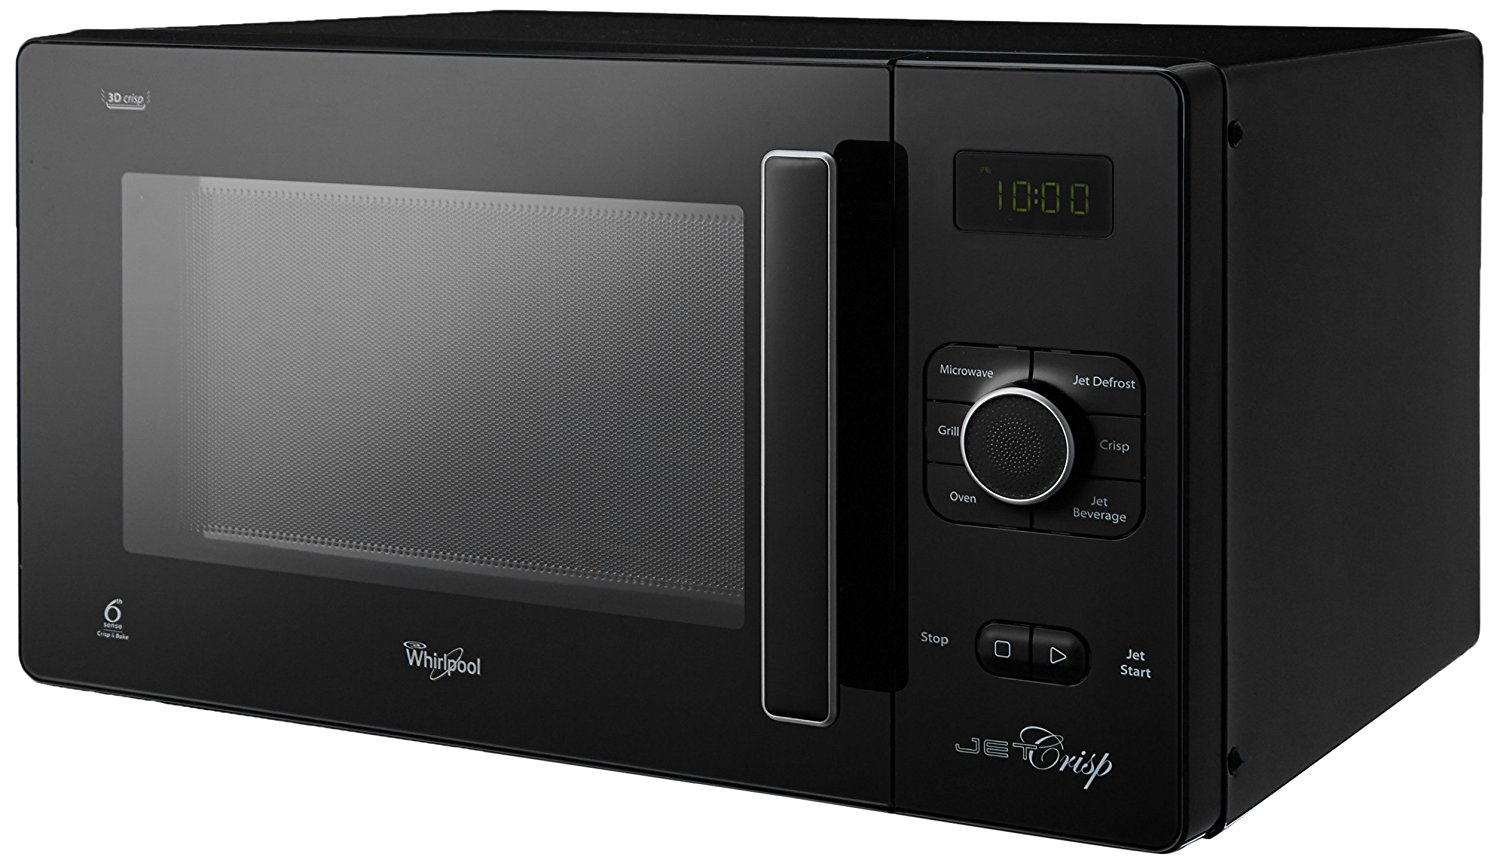 Whirlpool 25 Liters Oven